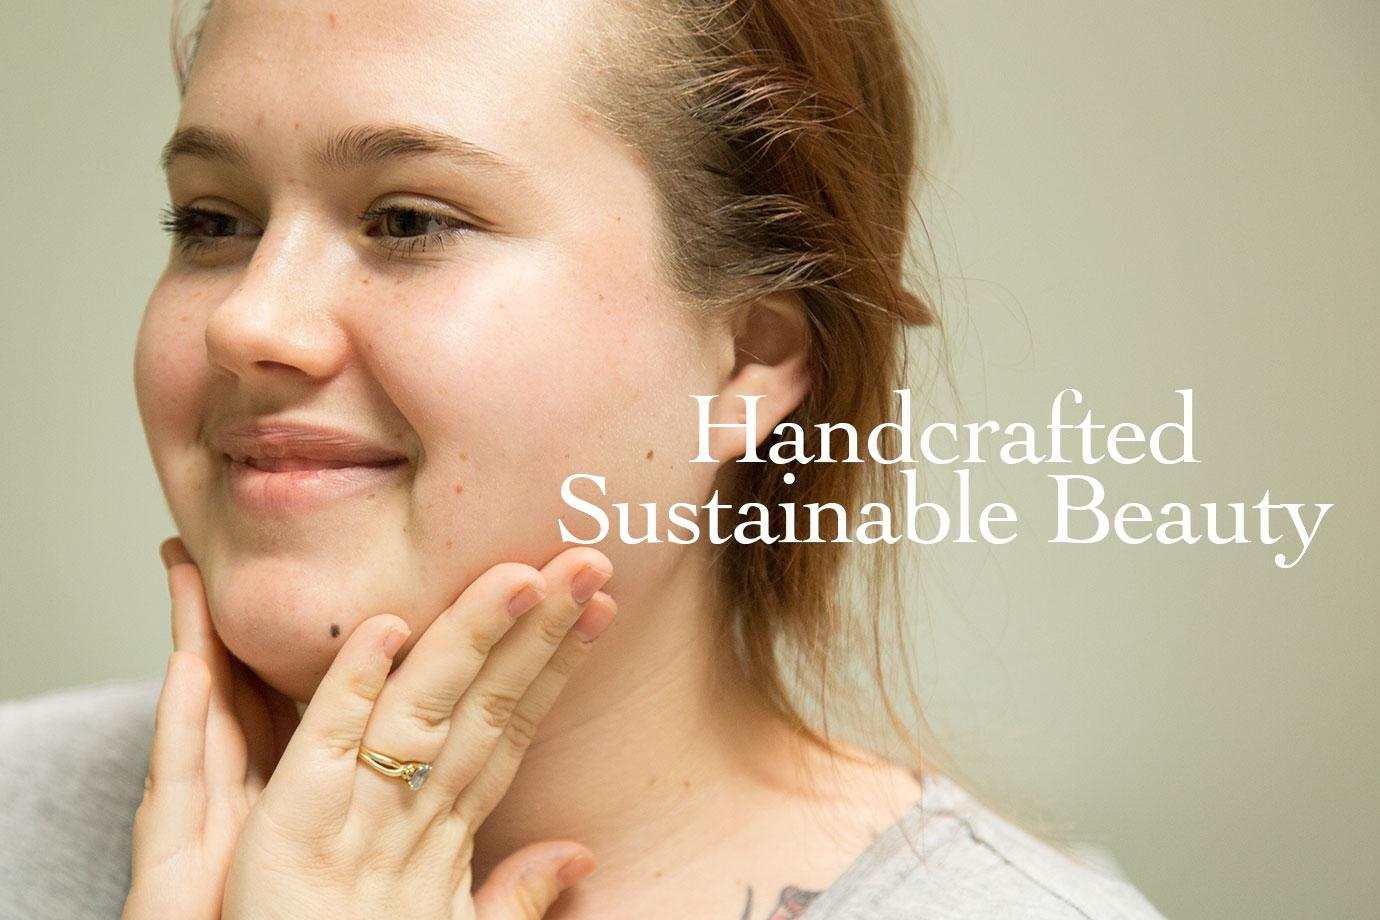 Handcrafted Sustainable Beauty